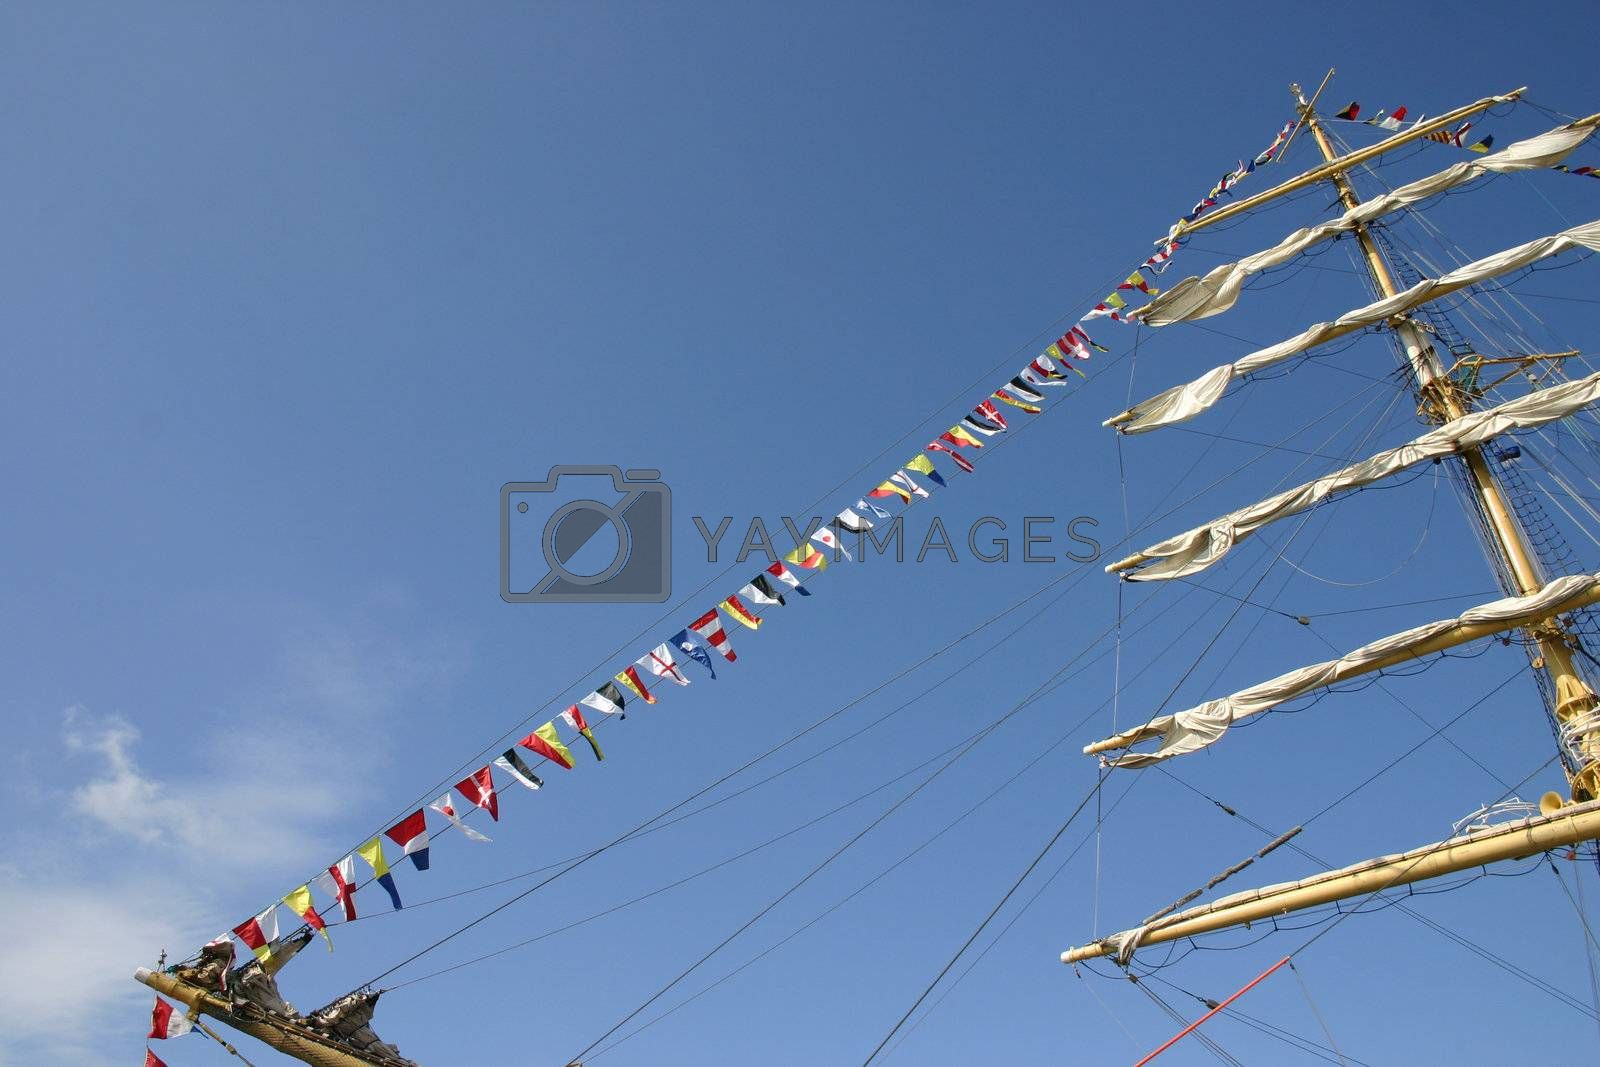 Sailing vessel with white sails on a mast and alarm flags